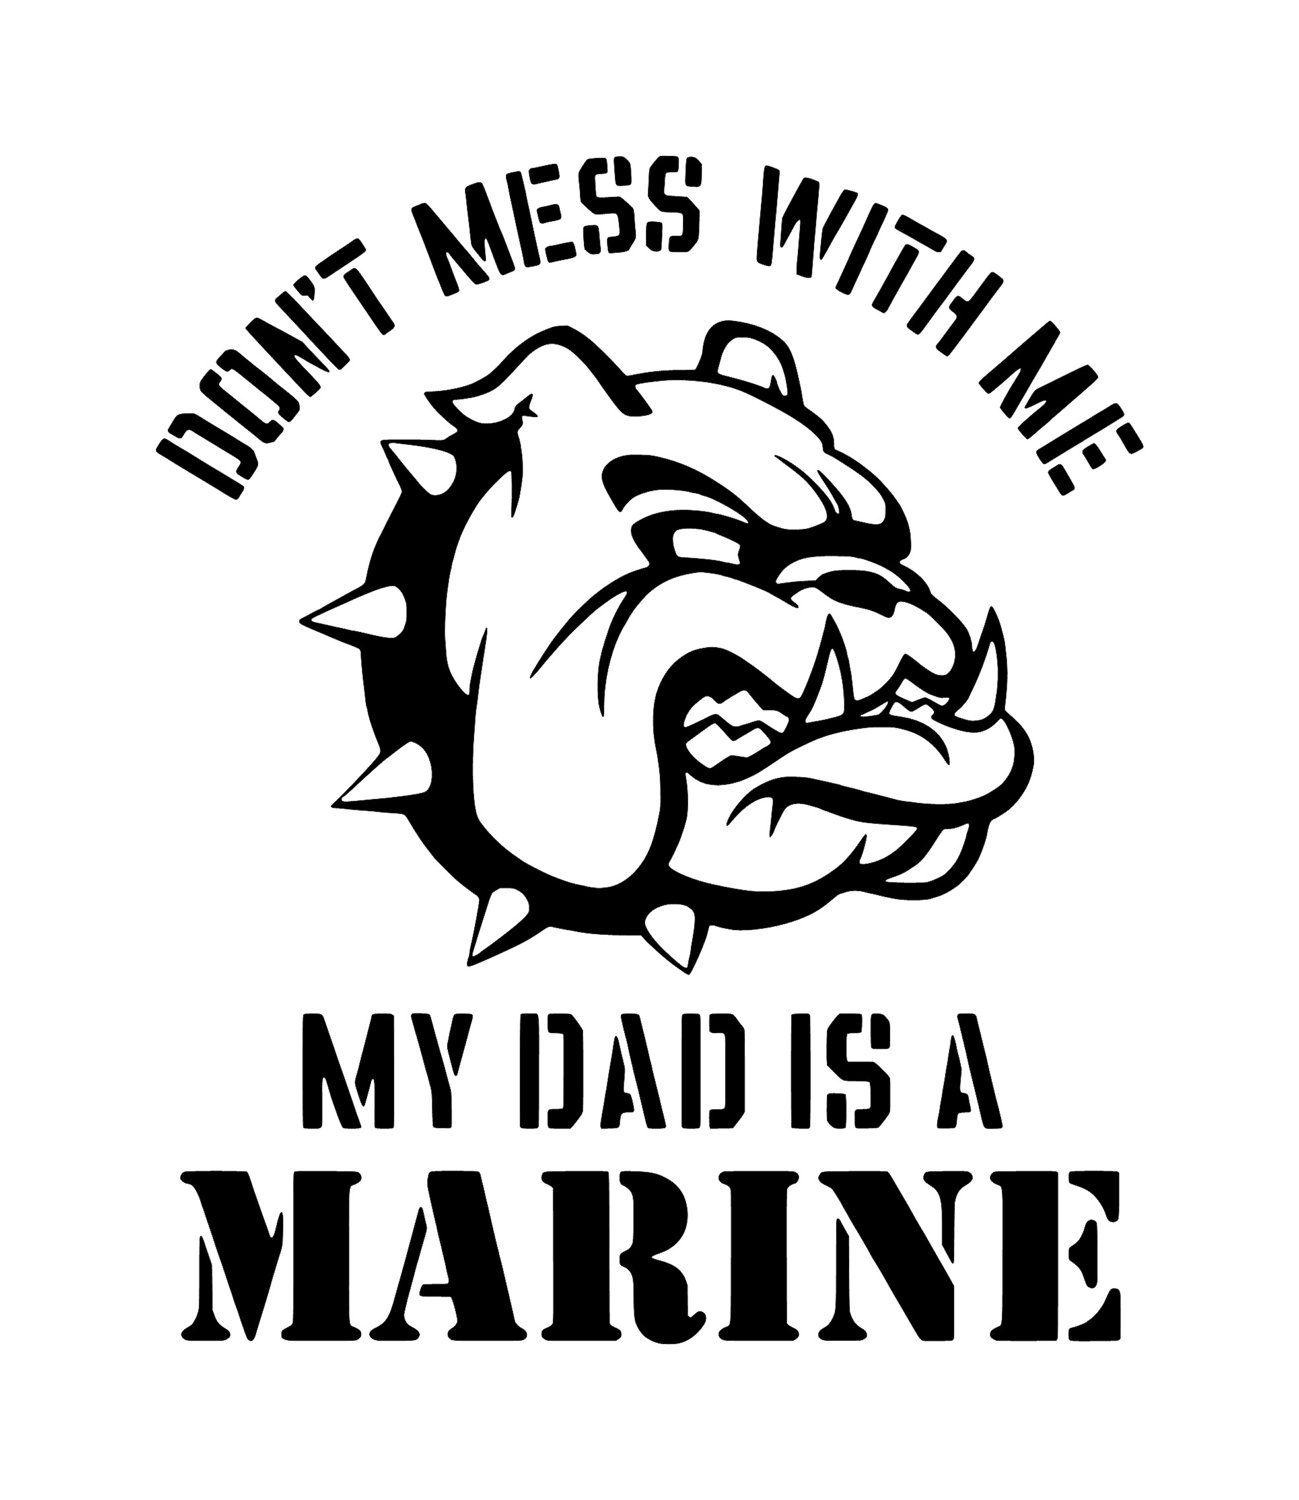 Don T Mess With Me My Dad Is A Marine Iron On Decal 7 00